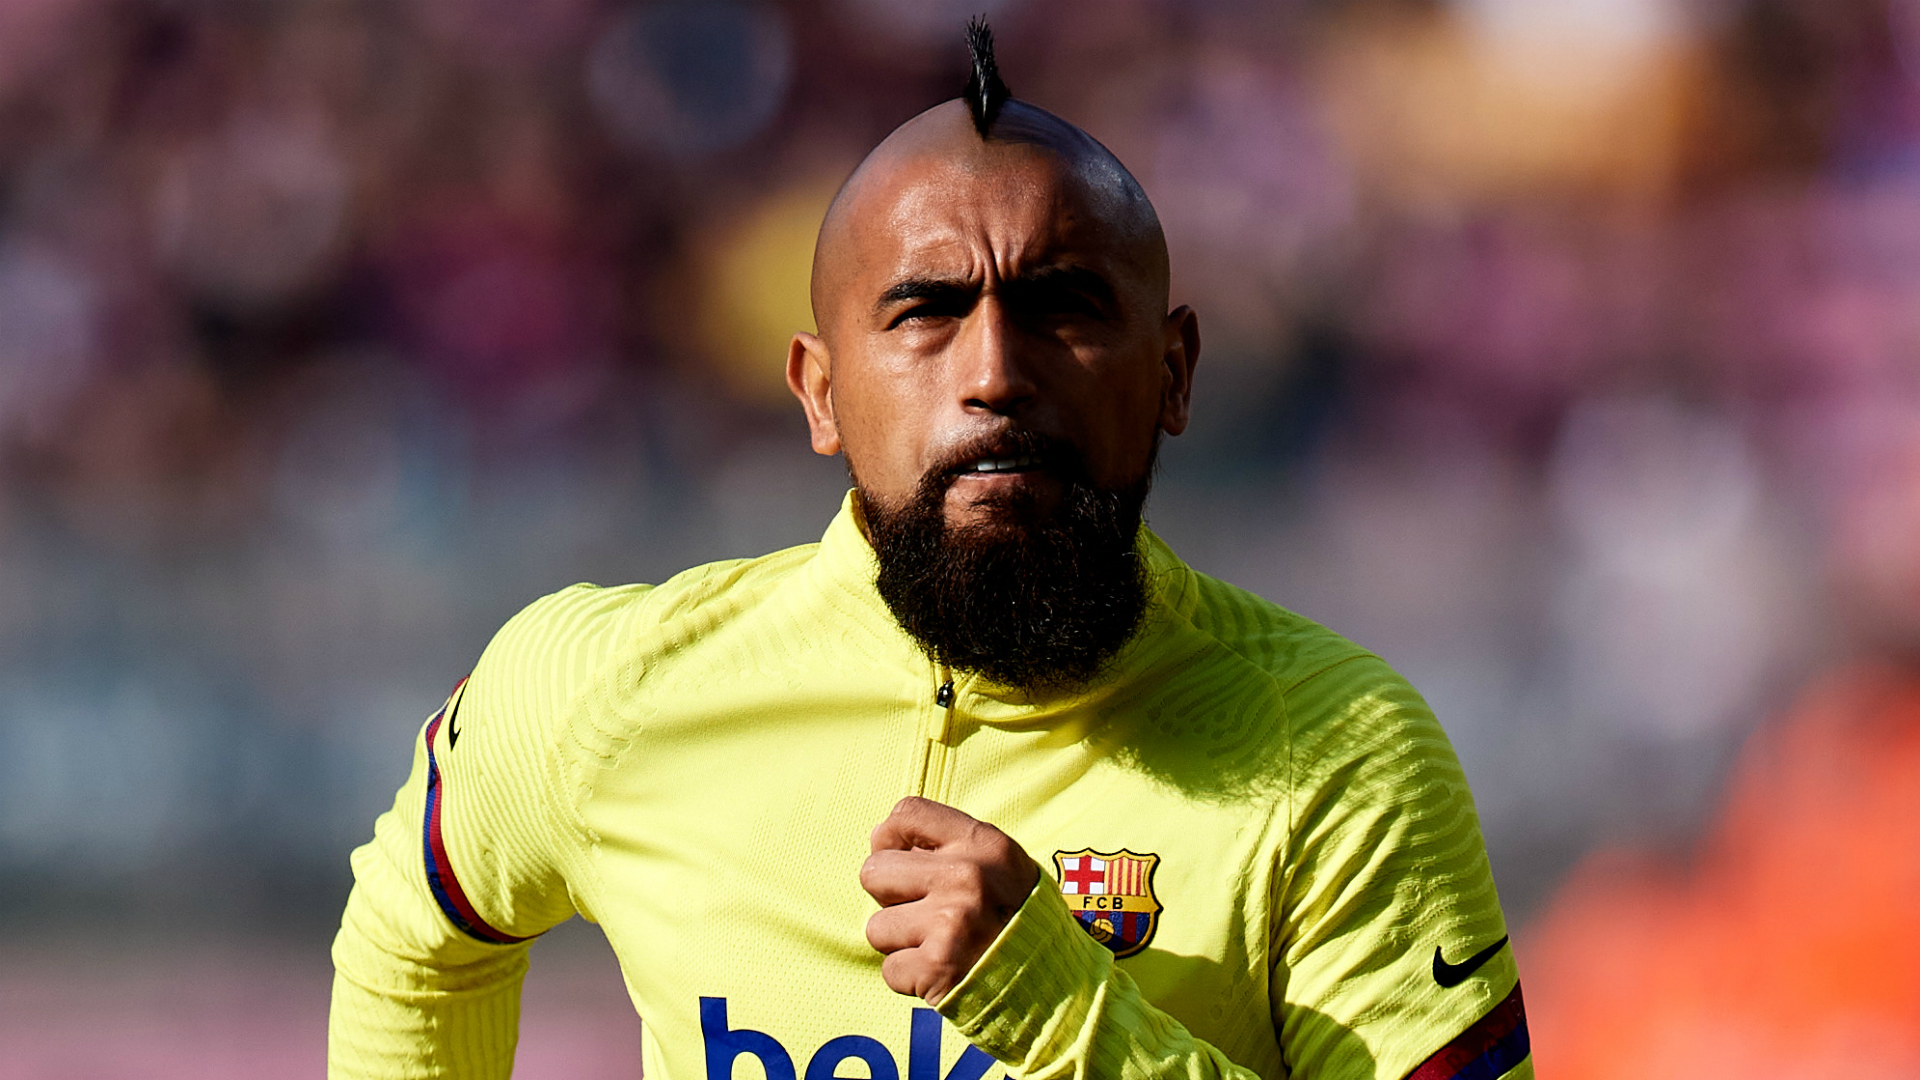 Barcelona midfielder Vidal wants to play for Boca Juniors, claims Medel